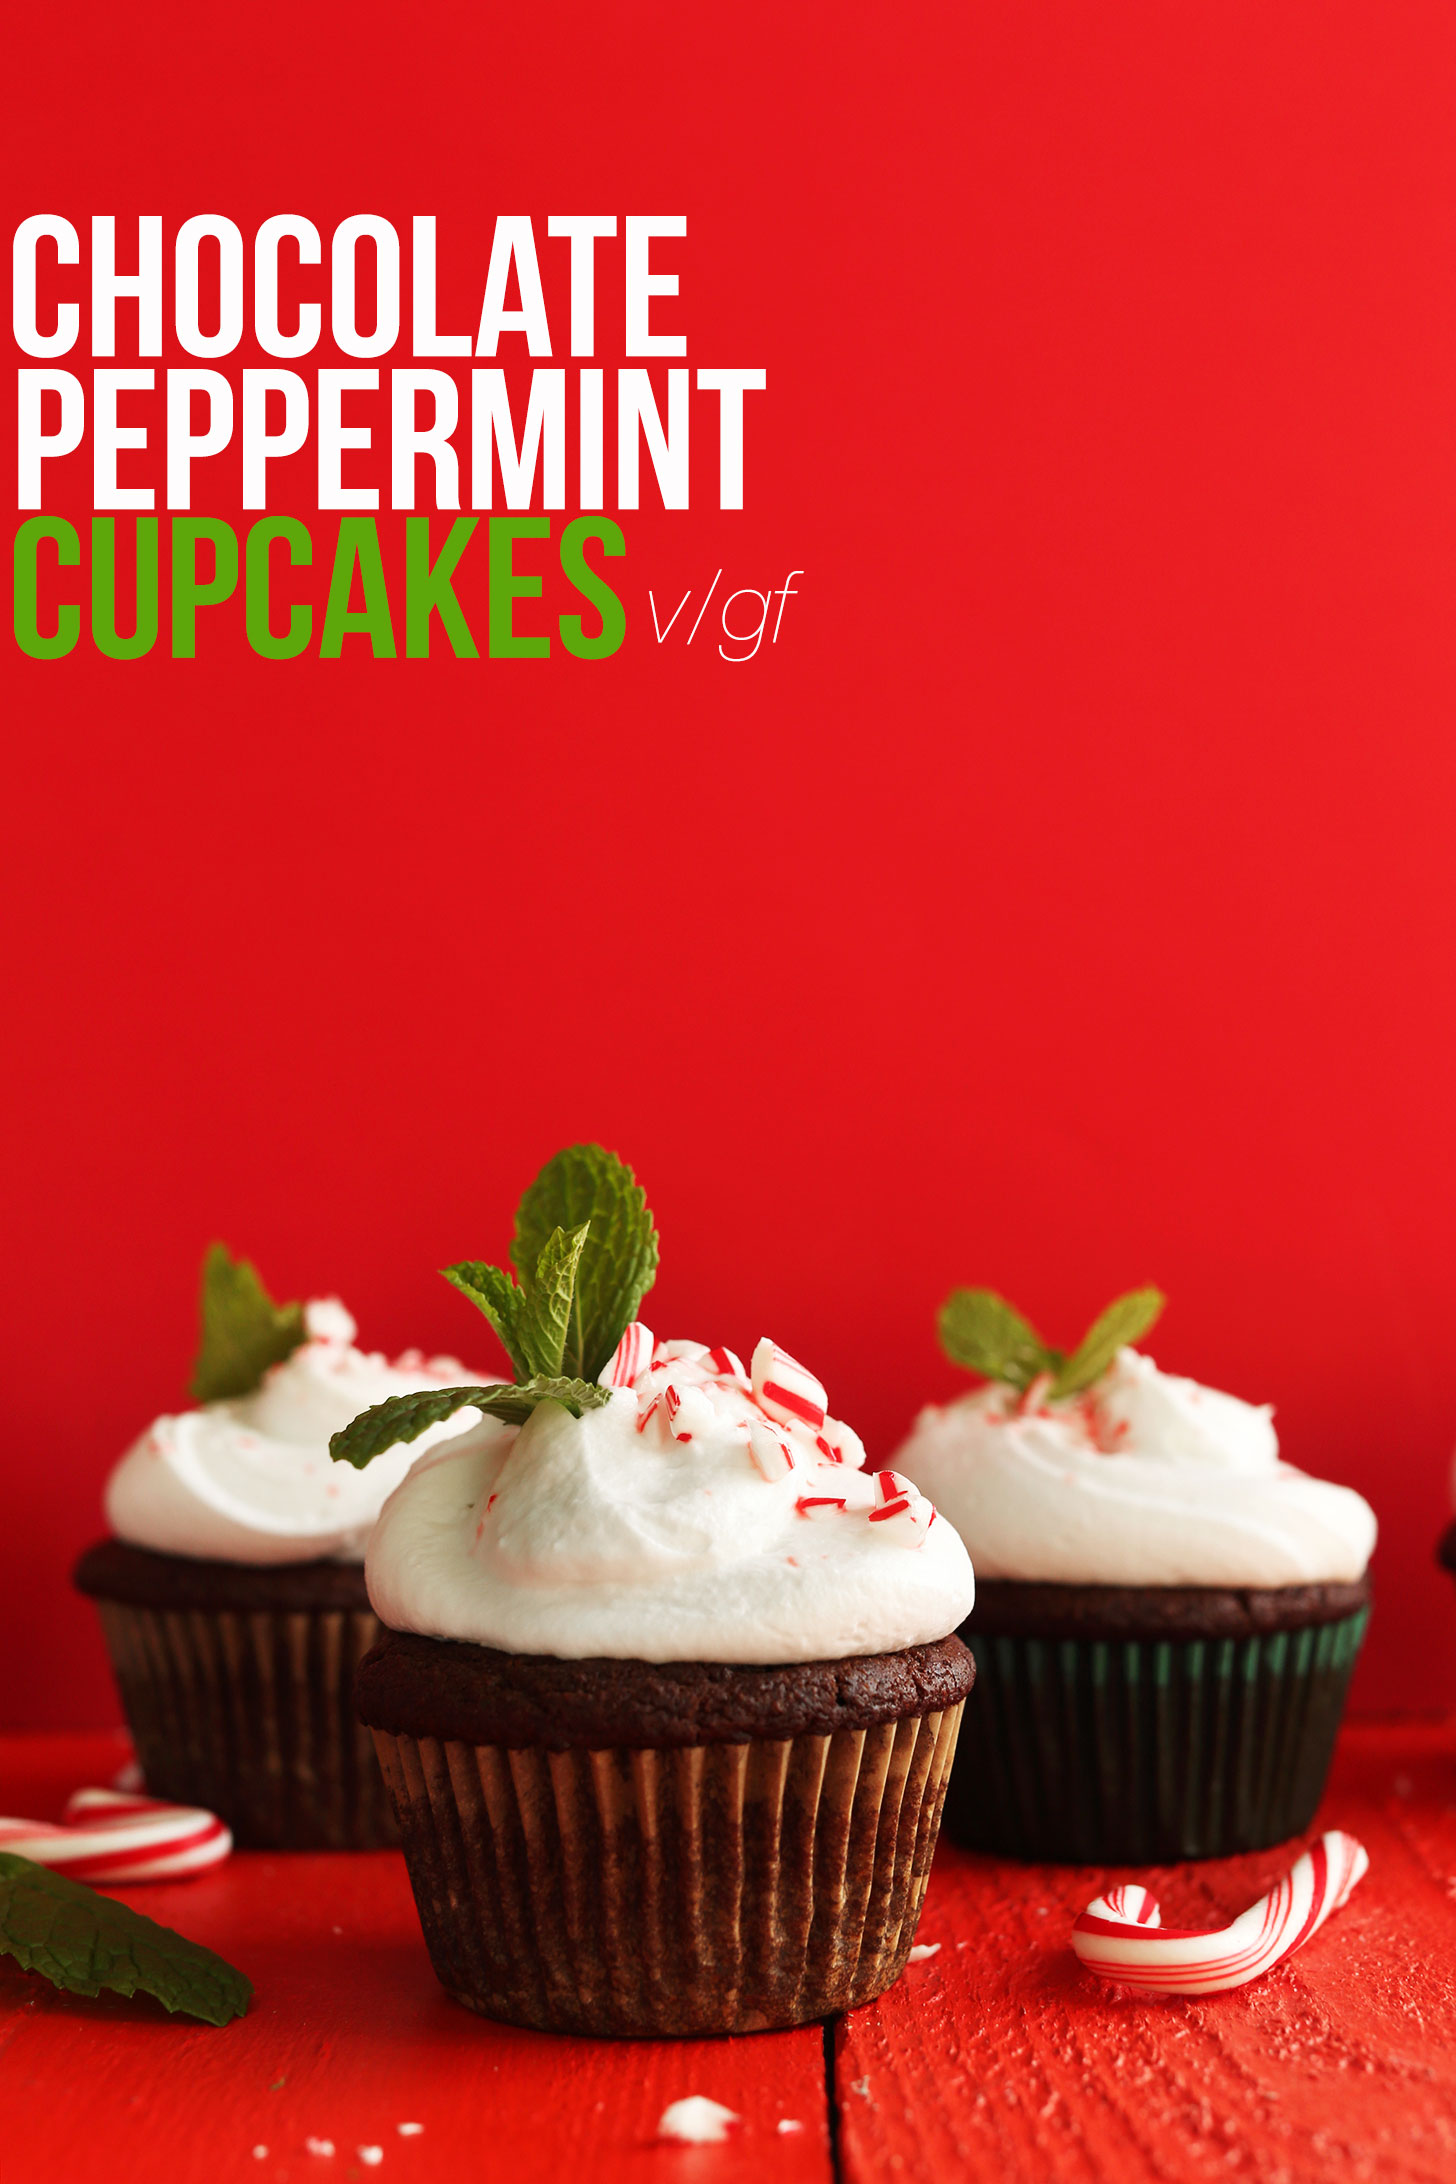 AMAZING Chocolate Peppermint Cupcakes made in 1 bowl and naturally sweetened! #vegan #glutenfree #dessert #recipe #chocolate #minimalistbaker